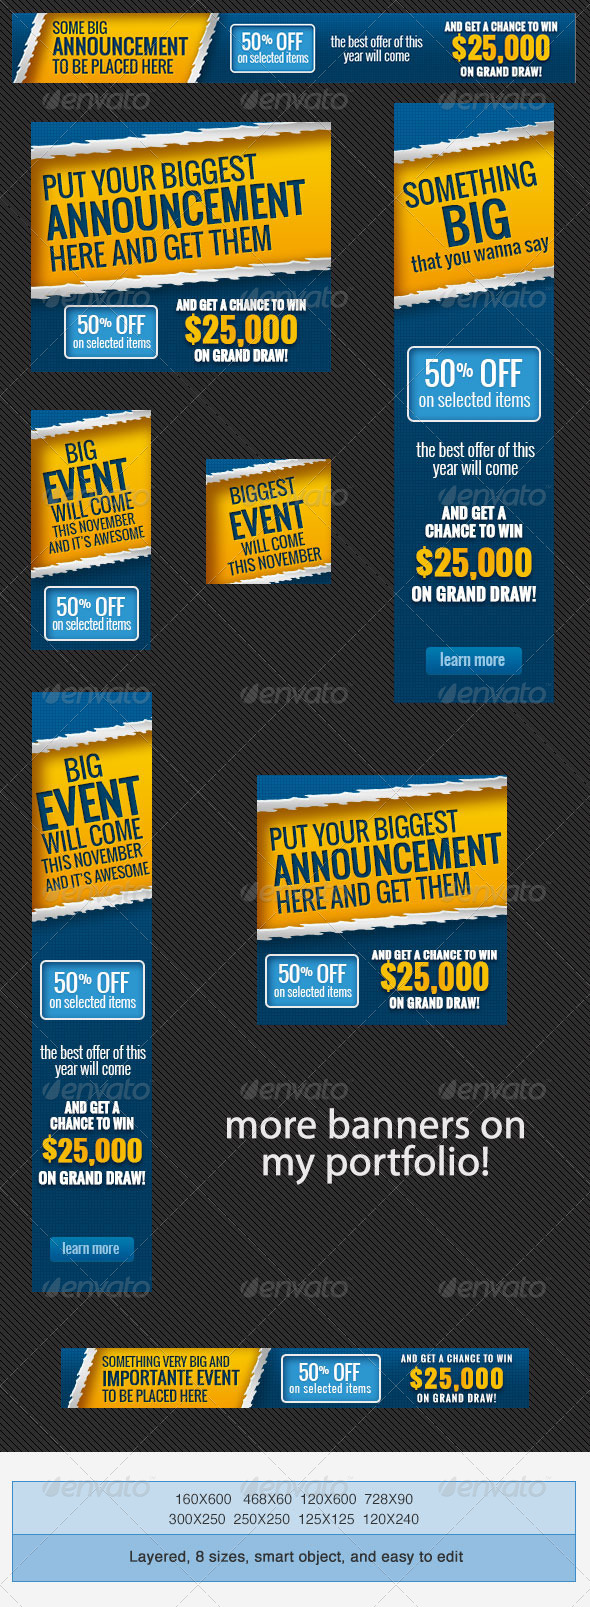 GraphicRiver Big Event Banner Ads PSD Template 4148225